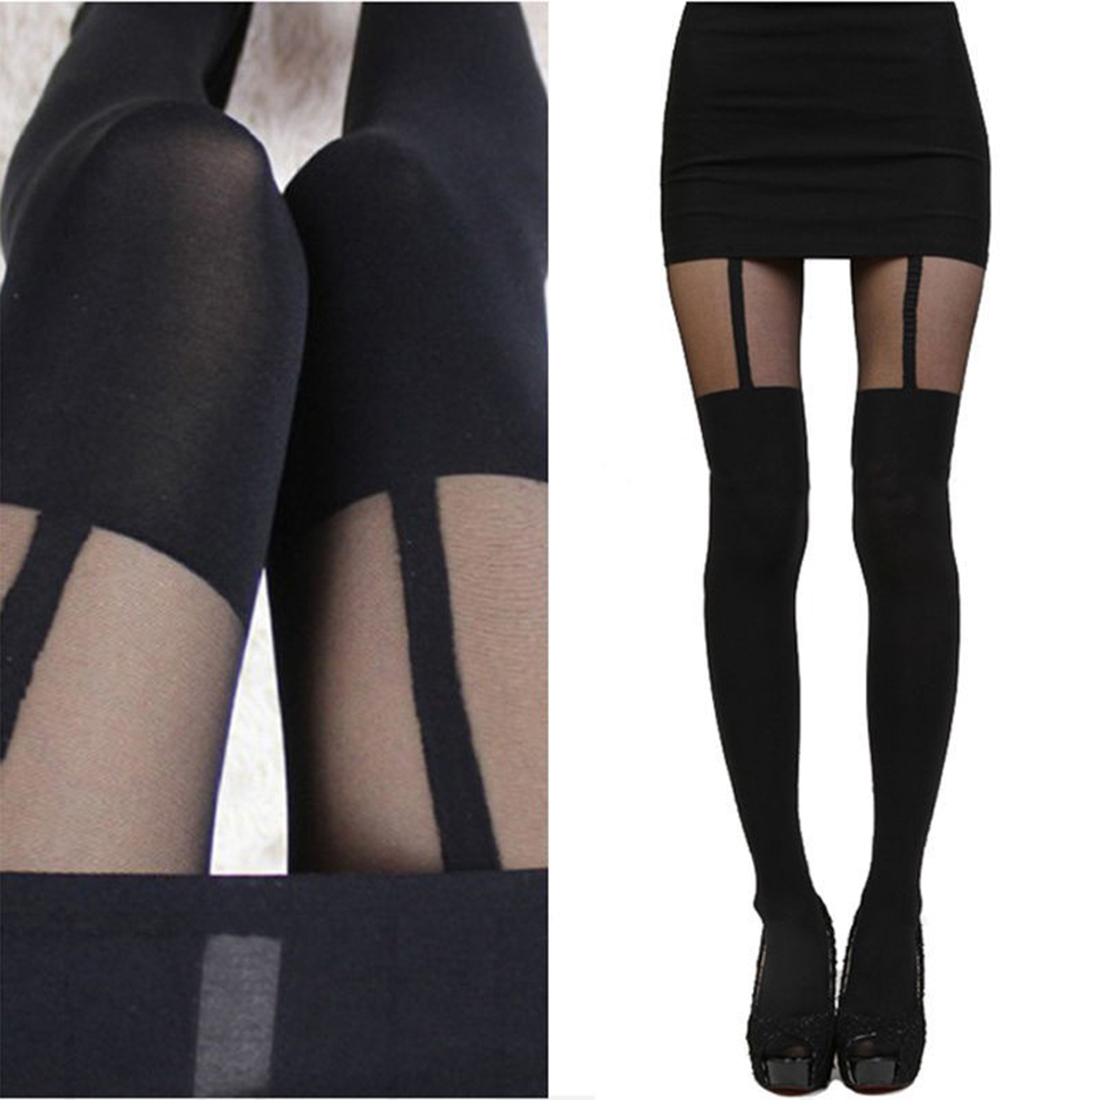 Latest Mock Suspender Tights Highly Patchwork Shiny Pantyhose Tights Stockings Patterned High Knee Pantyhose for Female